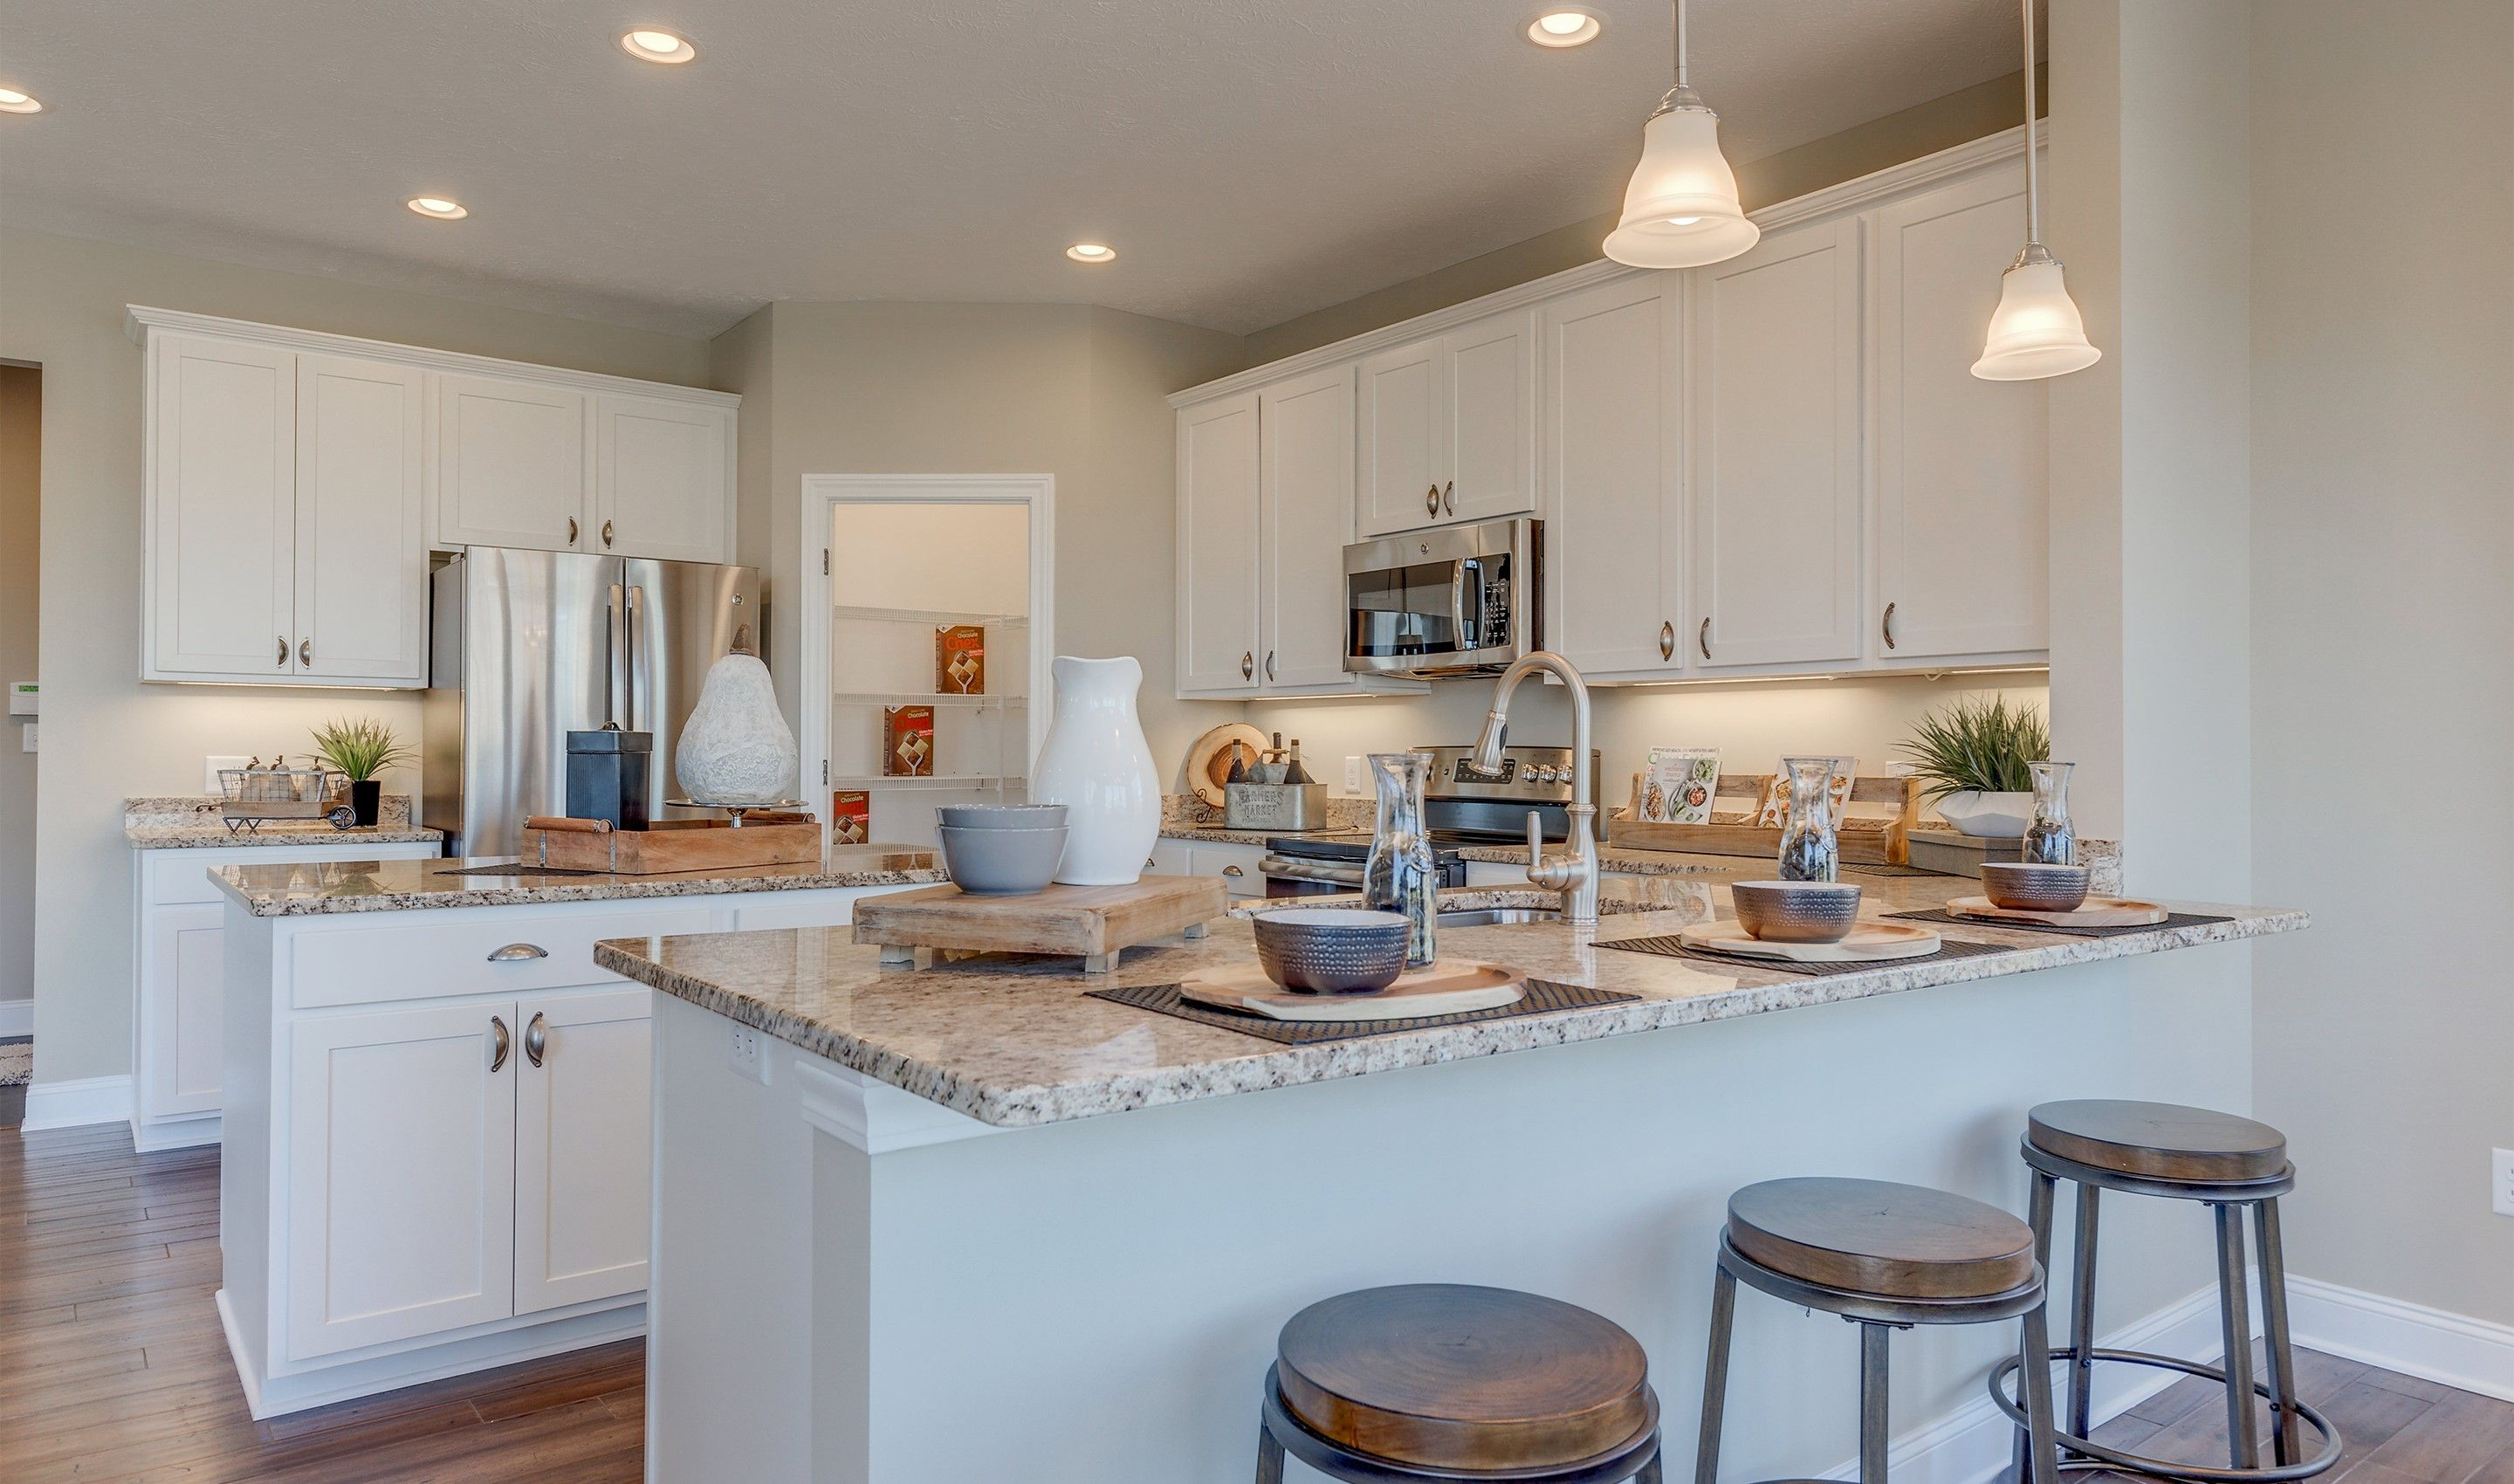 Kitchen featured in the Appleton - 3-Car Garage By K. Hovnanian® Homes in Cleveland, OH